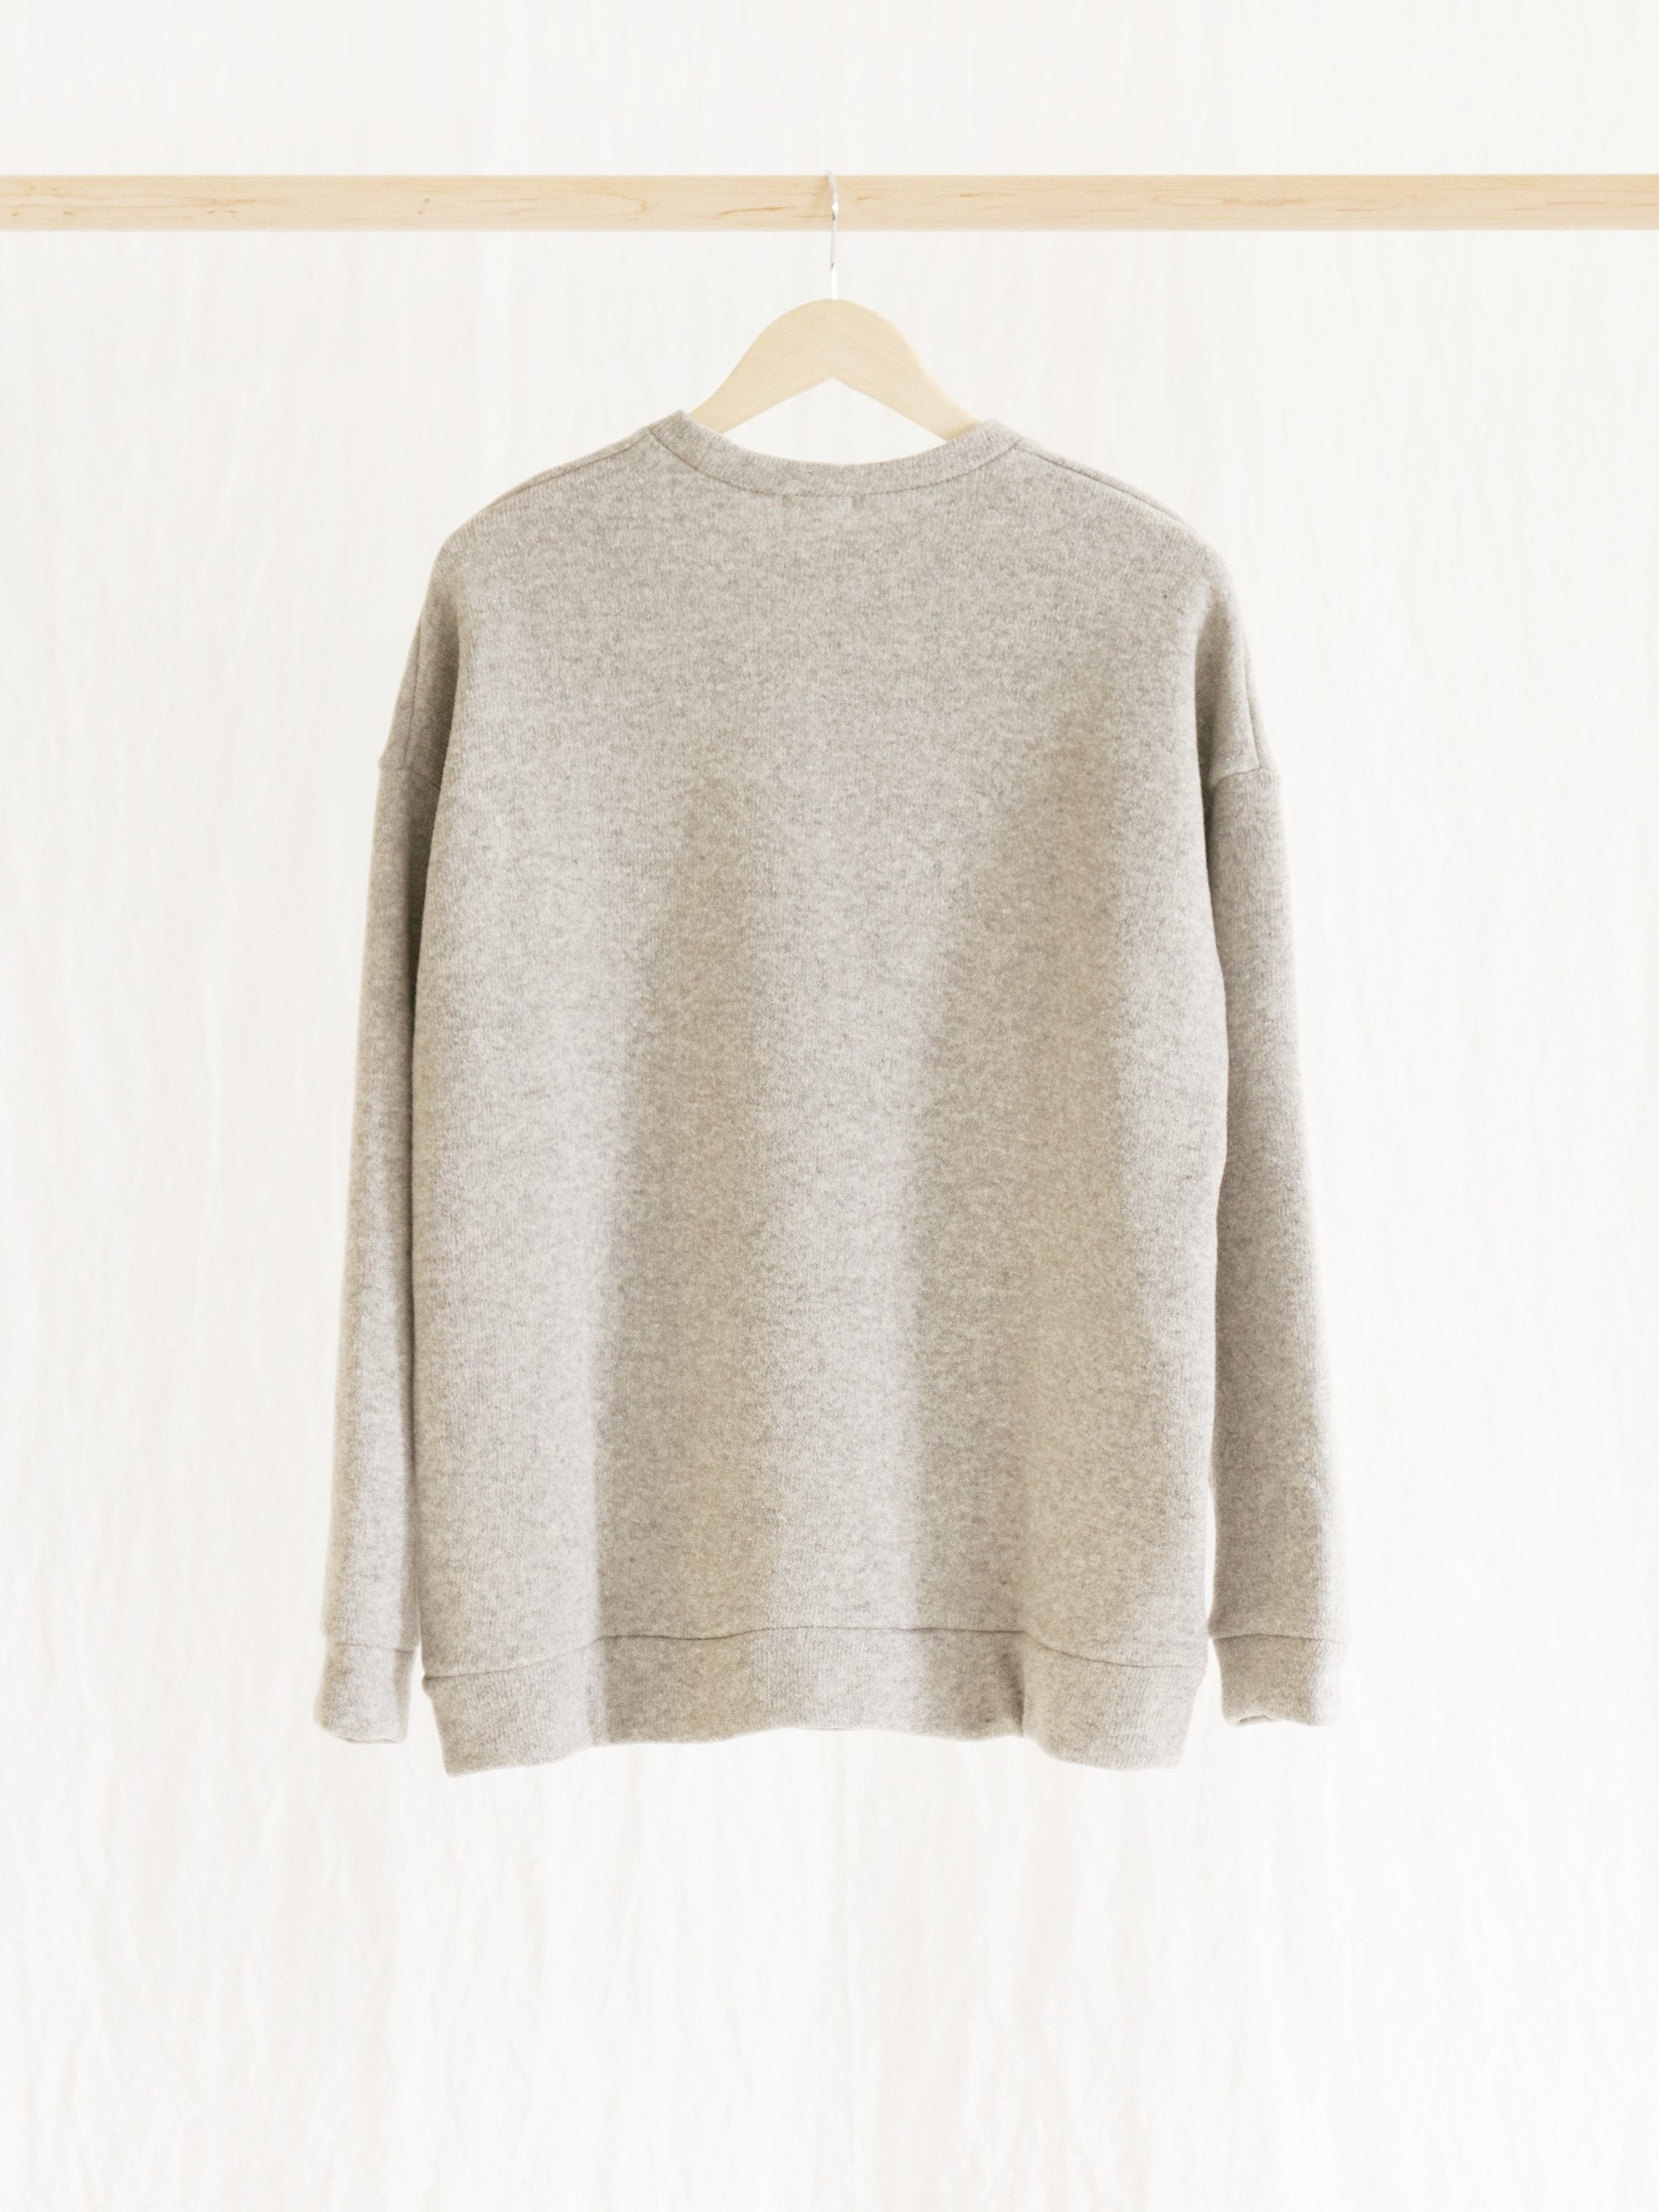 Namu Shop - Maillot Wool Pile Big Sweater - Top Gray